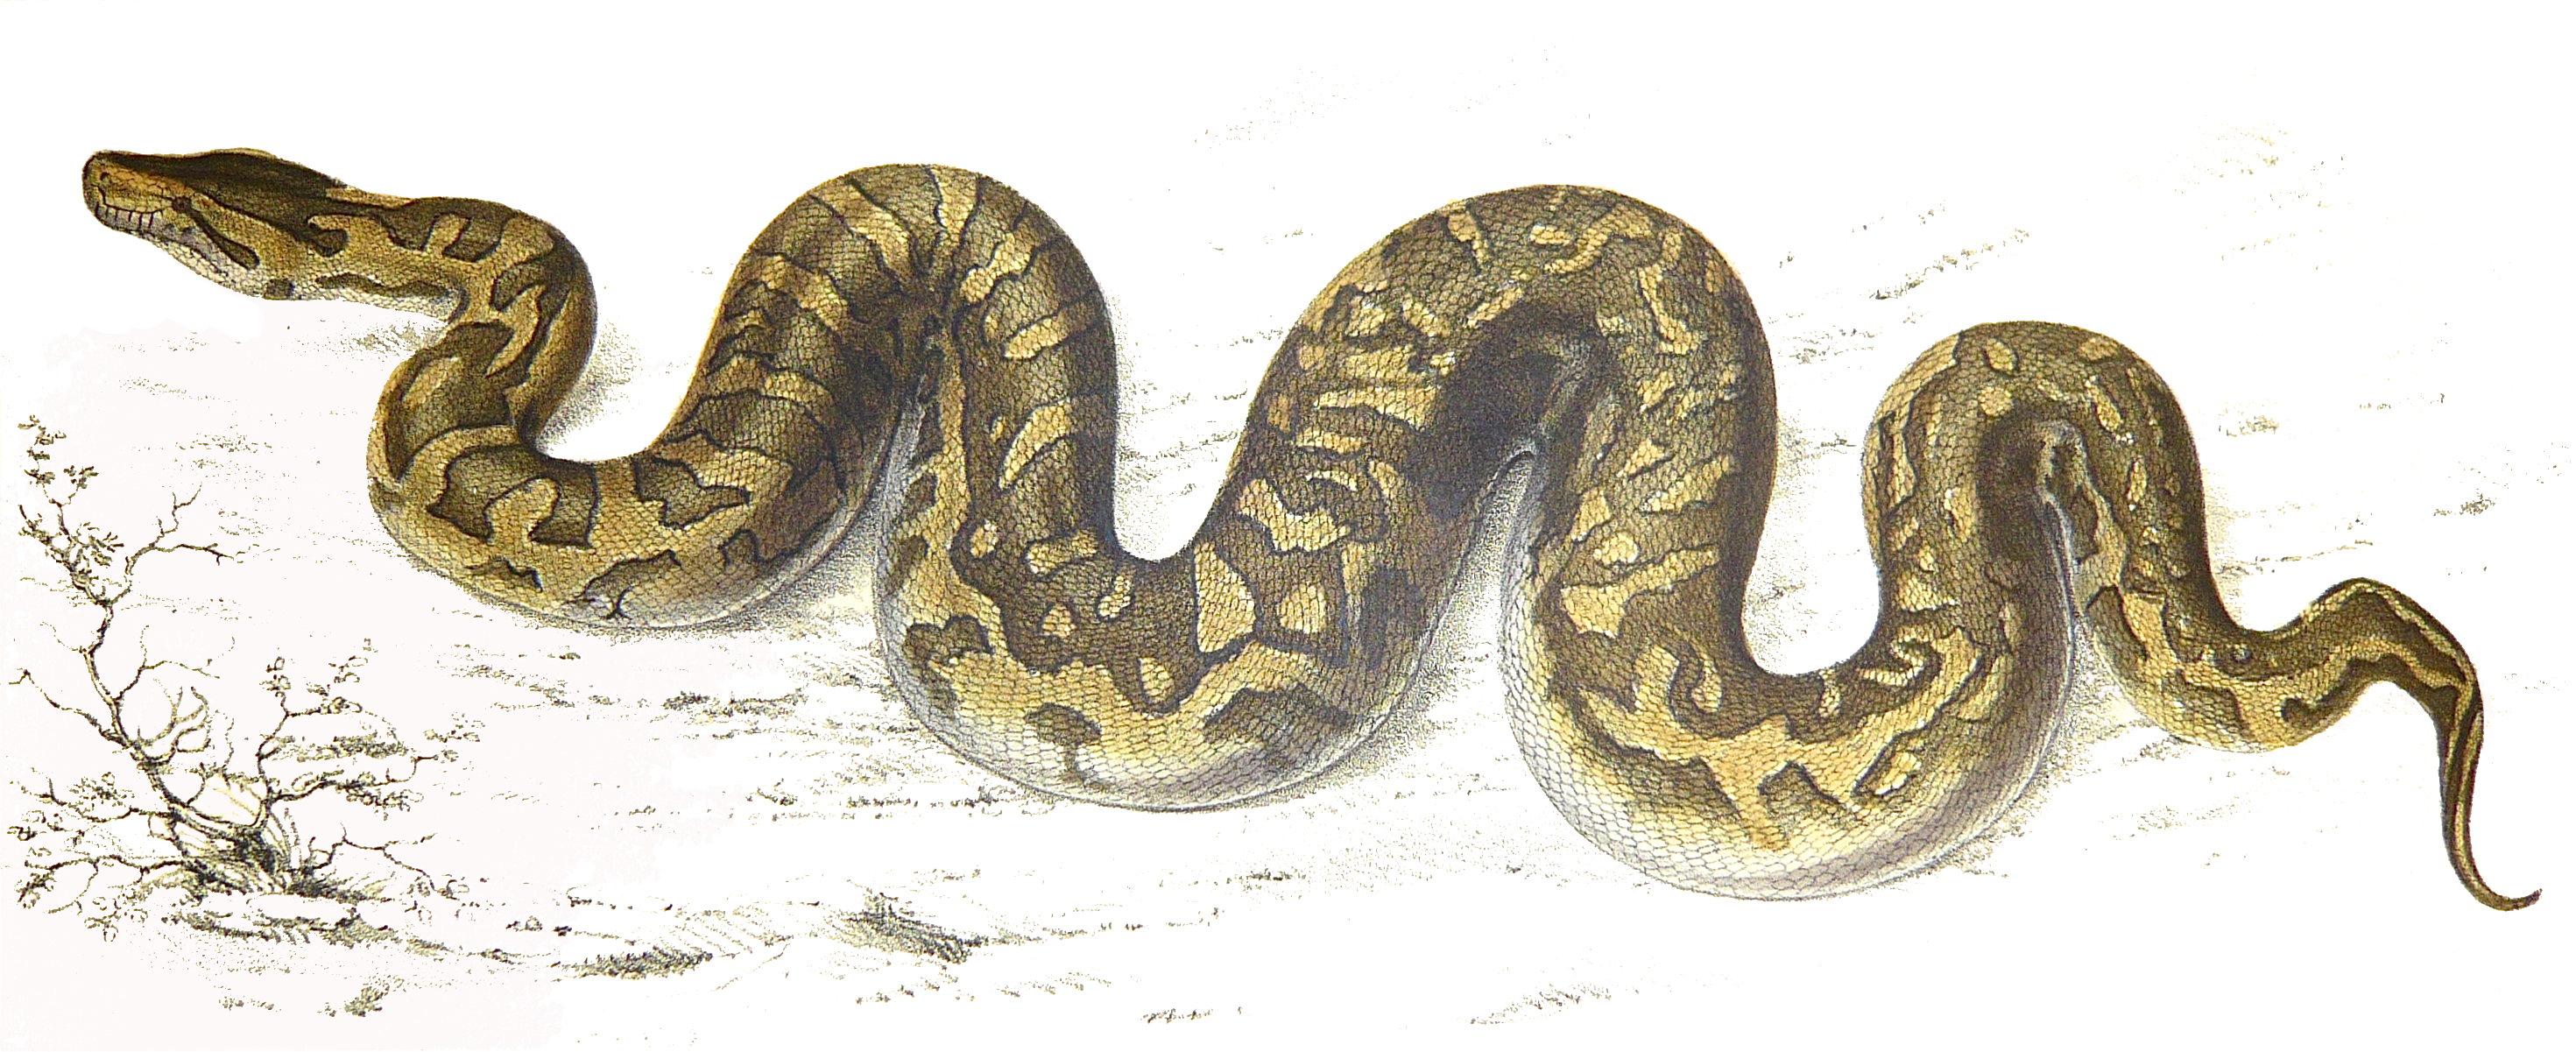 Sir Andrew Smith - A. Smith: Illustrations of the zoology of South Africa, Reptilia. Smith, Elder, and Co., London 1840 PYTHON NATALENSIS (Southern African Python) (Reptilia Plate 9) in A. Smith: Illustrations of the zoology of South Africa, Reptilia. Smith, Elder, and Co., London 1840